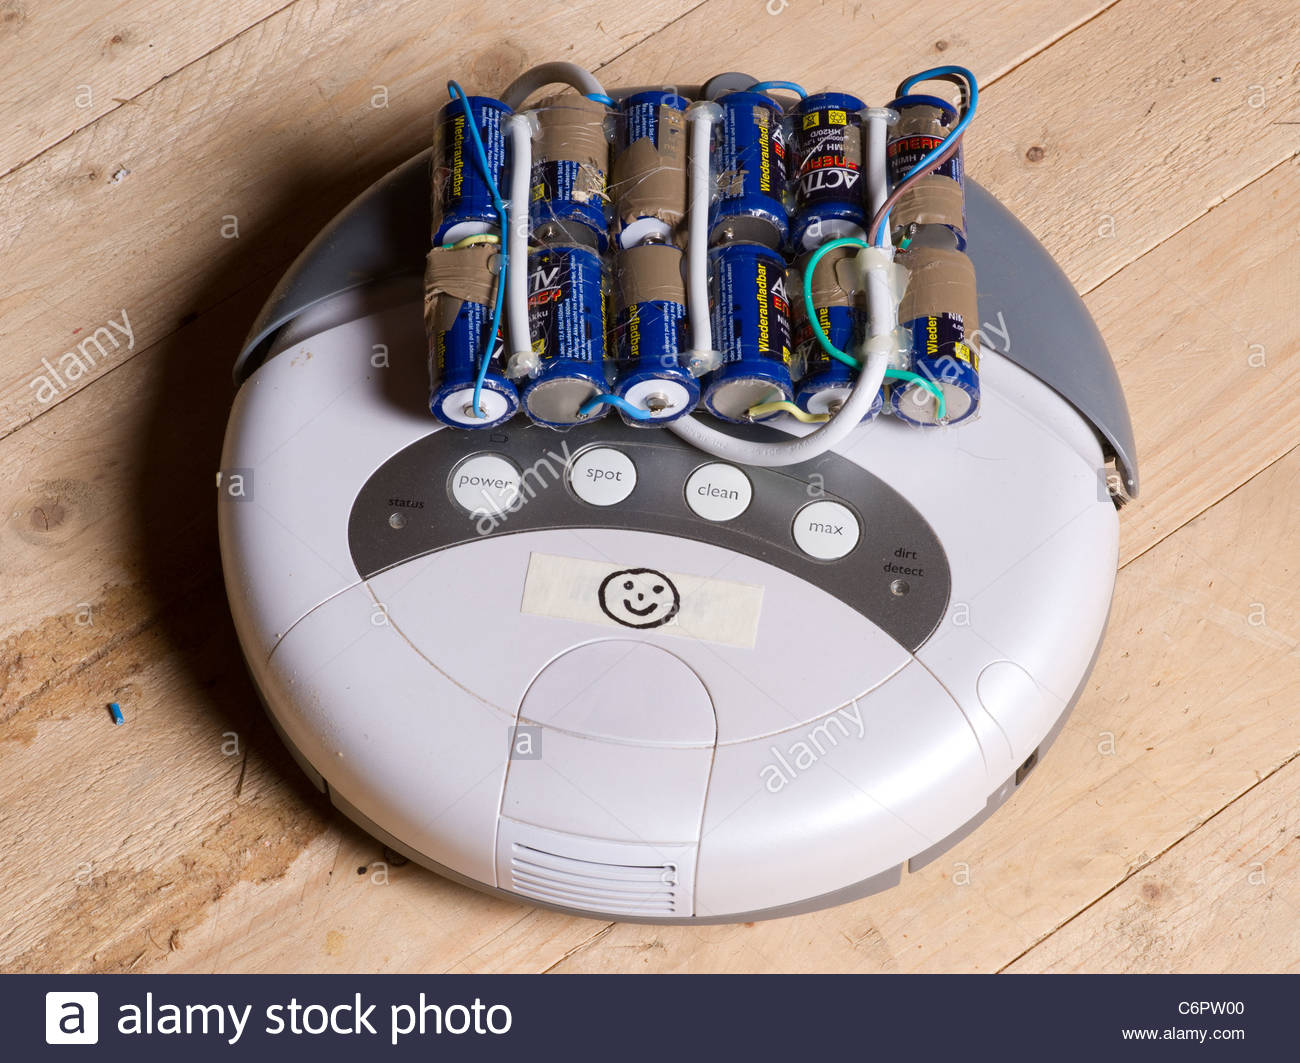 Robot vacuum cleaner powered by homemade battery for ...